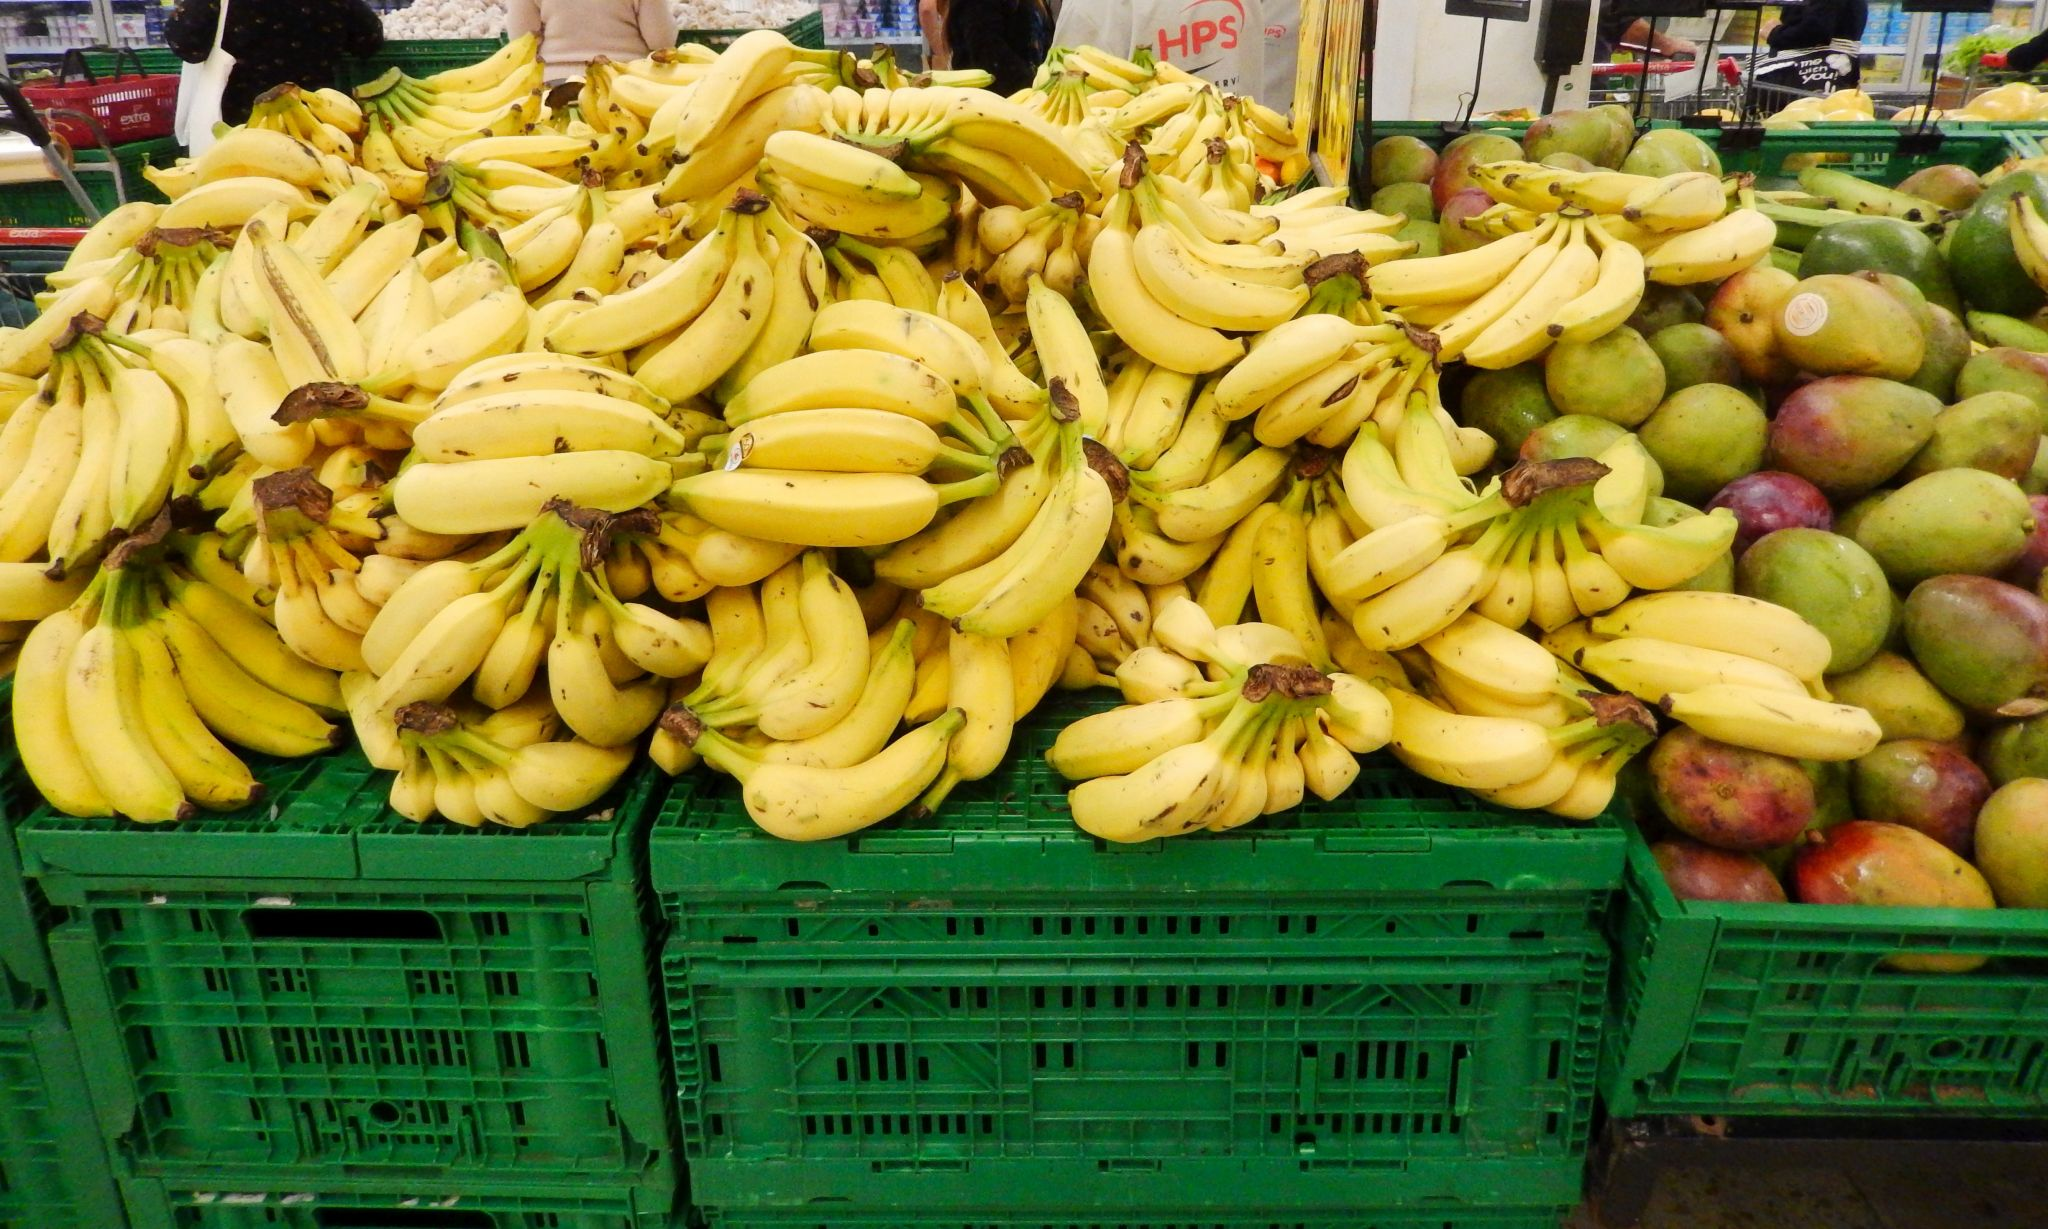 Bananas and mangos in supermarket